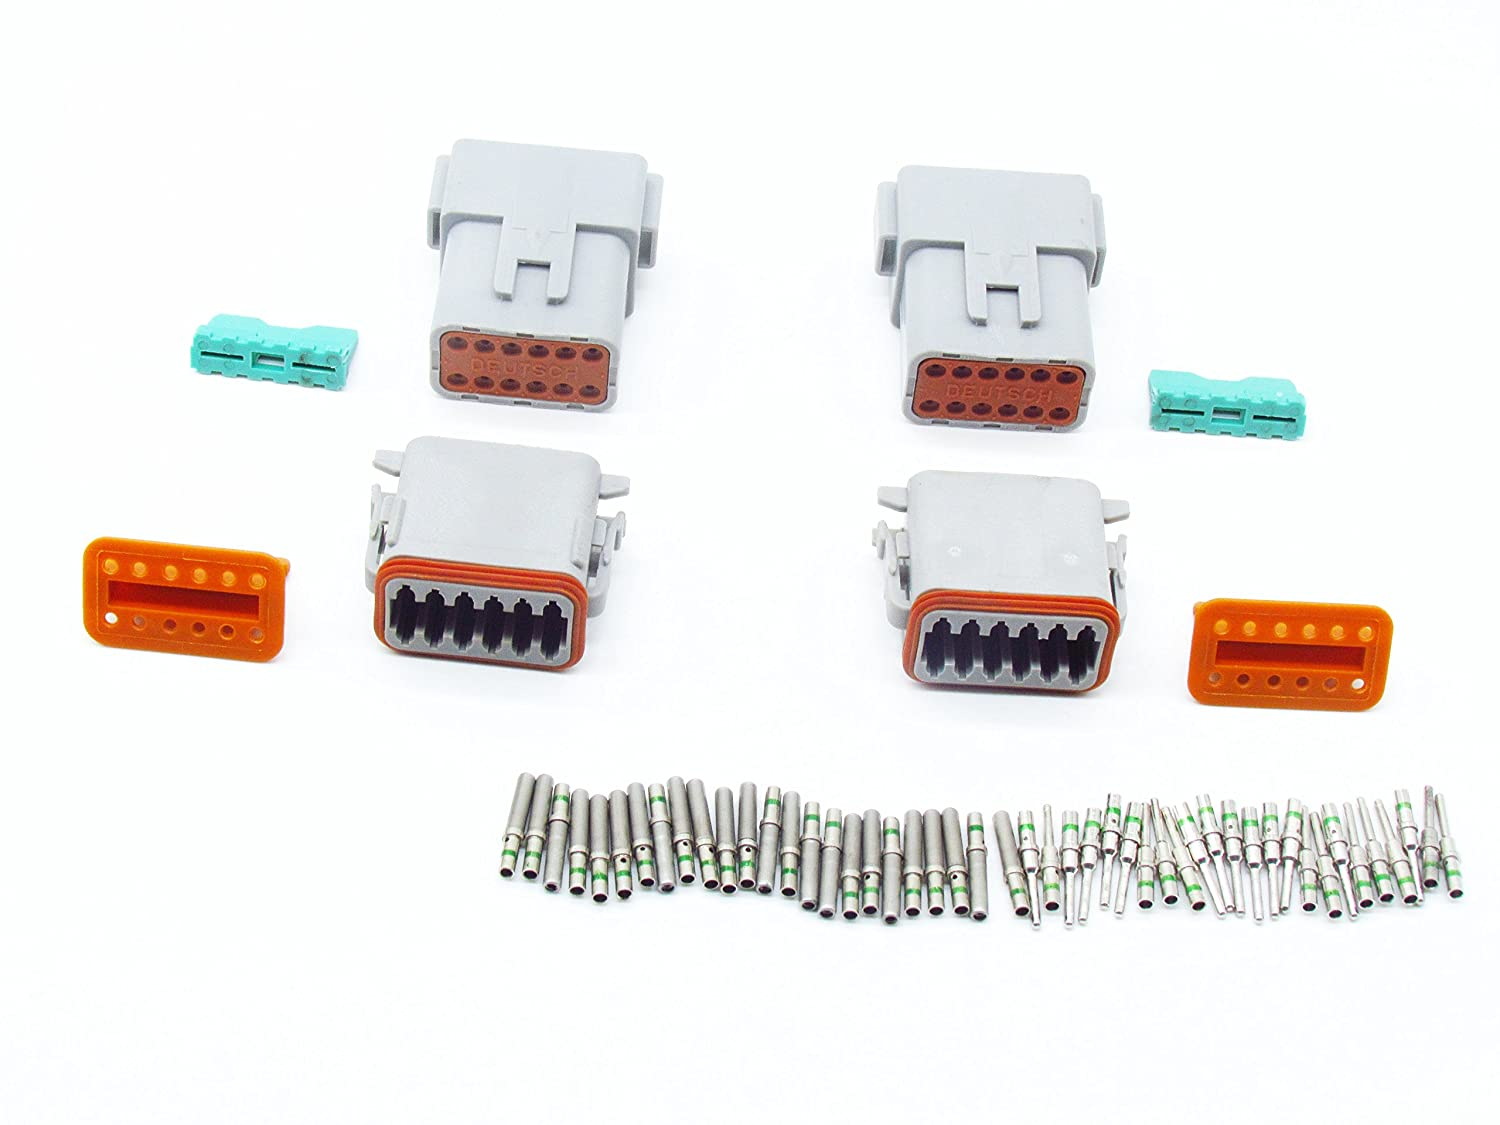 CNKF 2 Sets DT 12 Pin Gray Connector Kit with 14 Gauge Crimp Style Terminals DT06-12S//DT04-12P